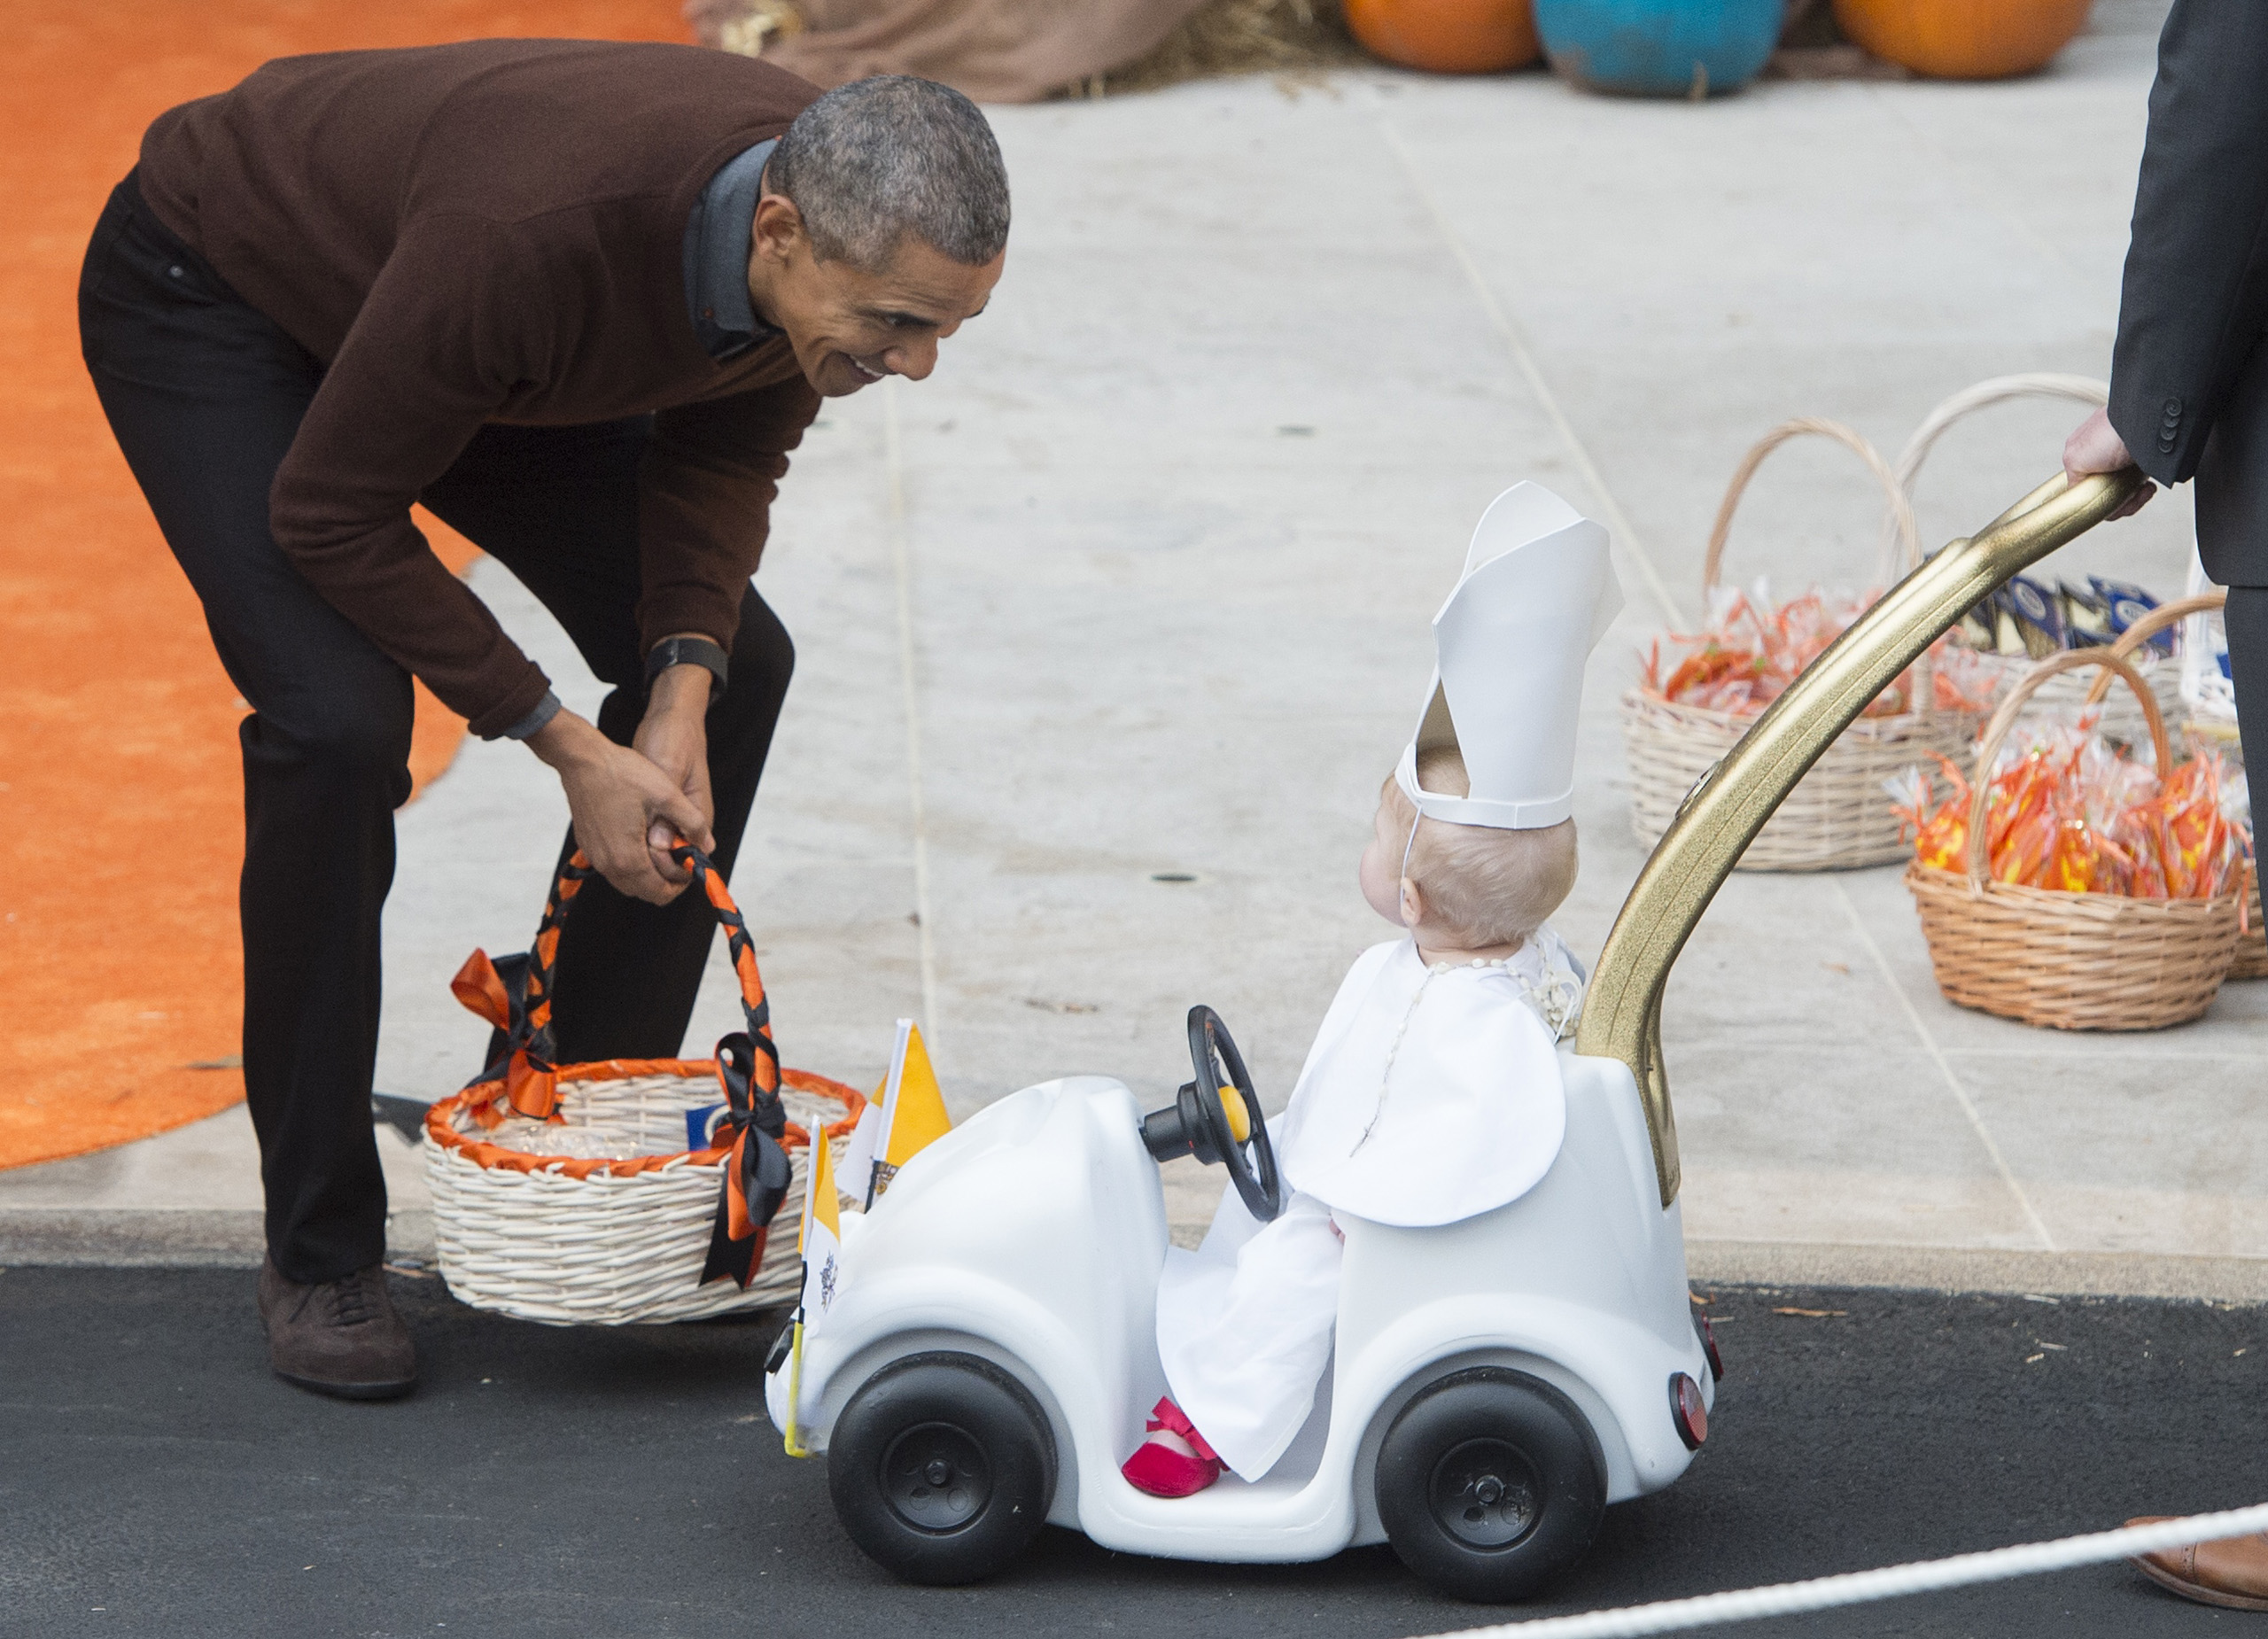 Obama greets a young child dressed as the Pope and riding in a  Popemobile  as he hands out treats to children trick-or-treating for Halloween on the South Lawn of the White House on Oct. 30, 2015.